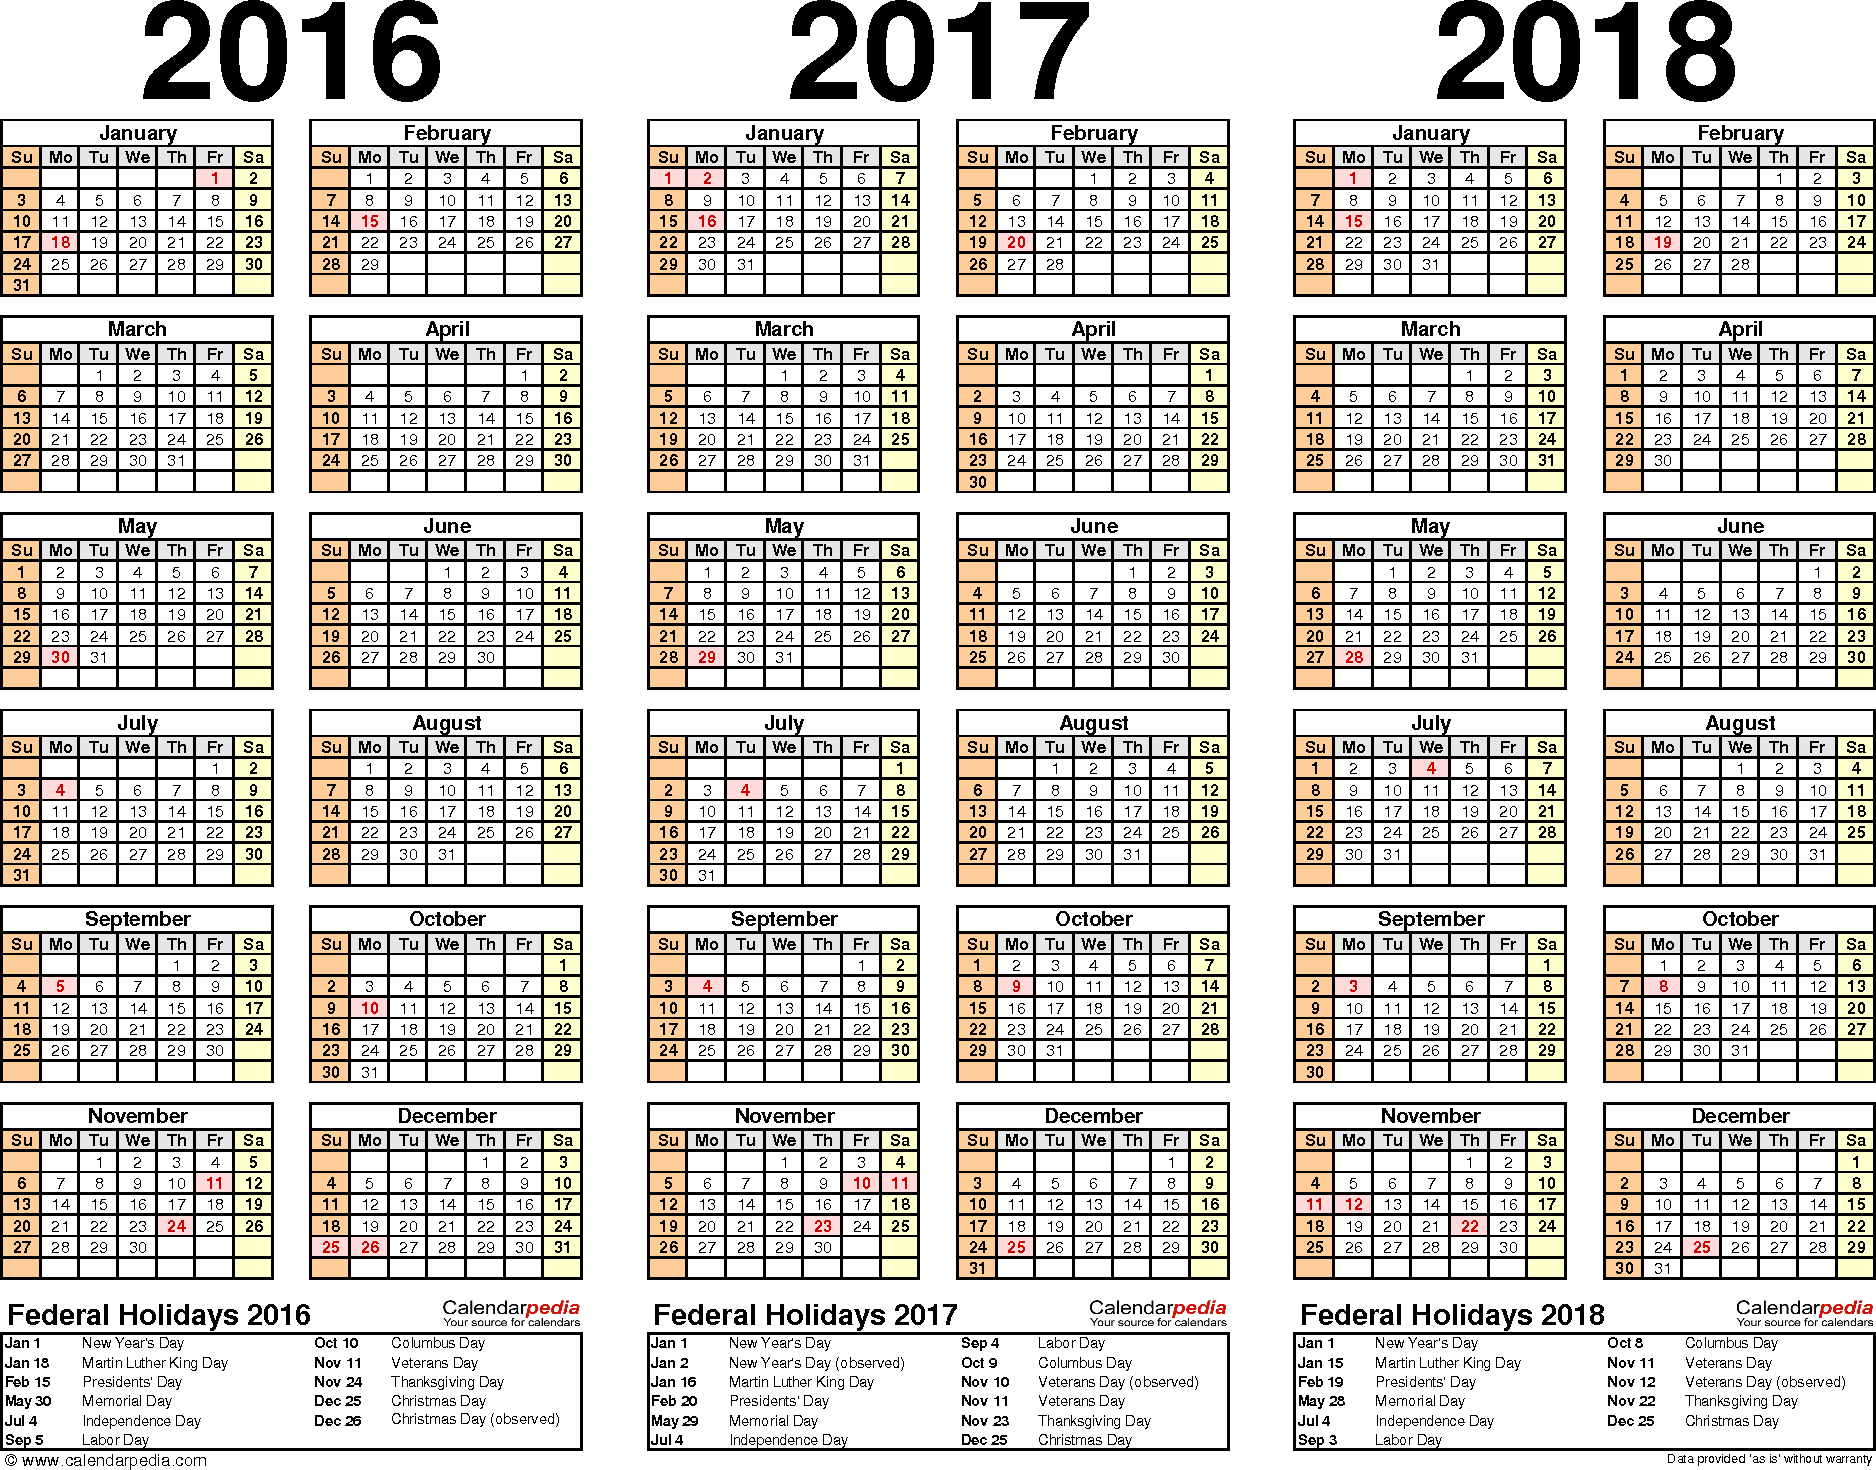 Template 2: Word template for three year calendar 2016/2017/2018 (landscape orientation, 1 page)